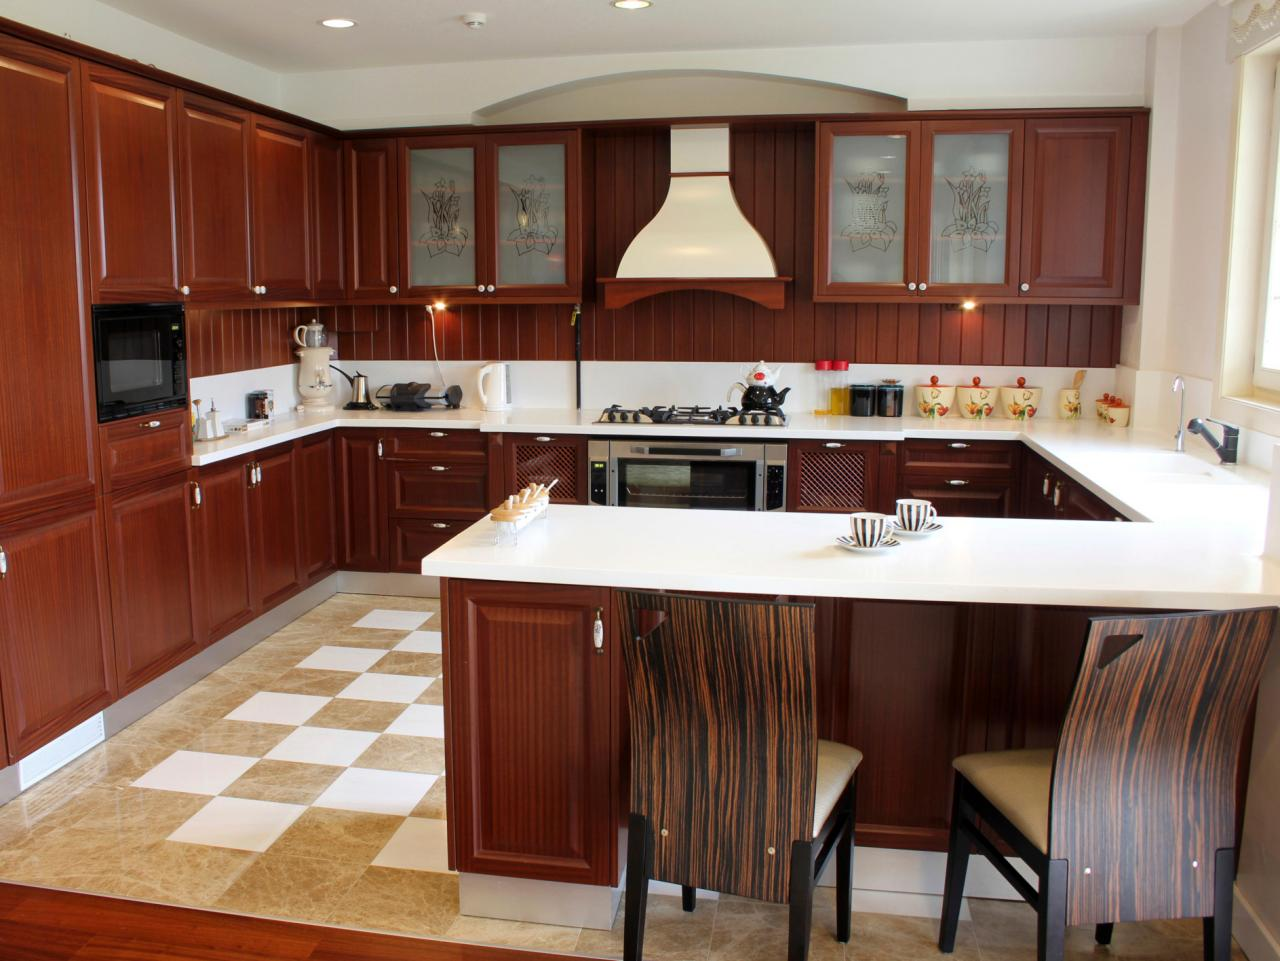 U shaped kitchens hgtv for G shape kitchen